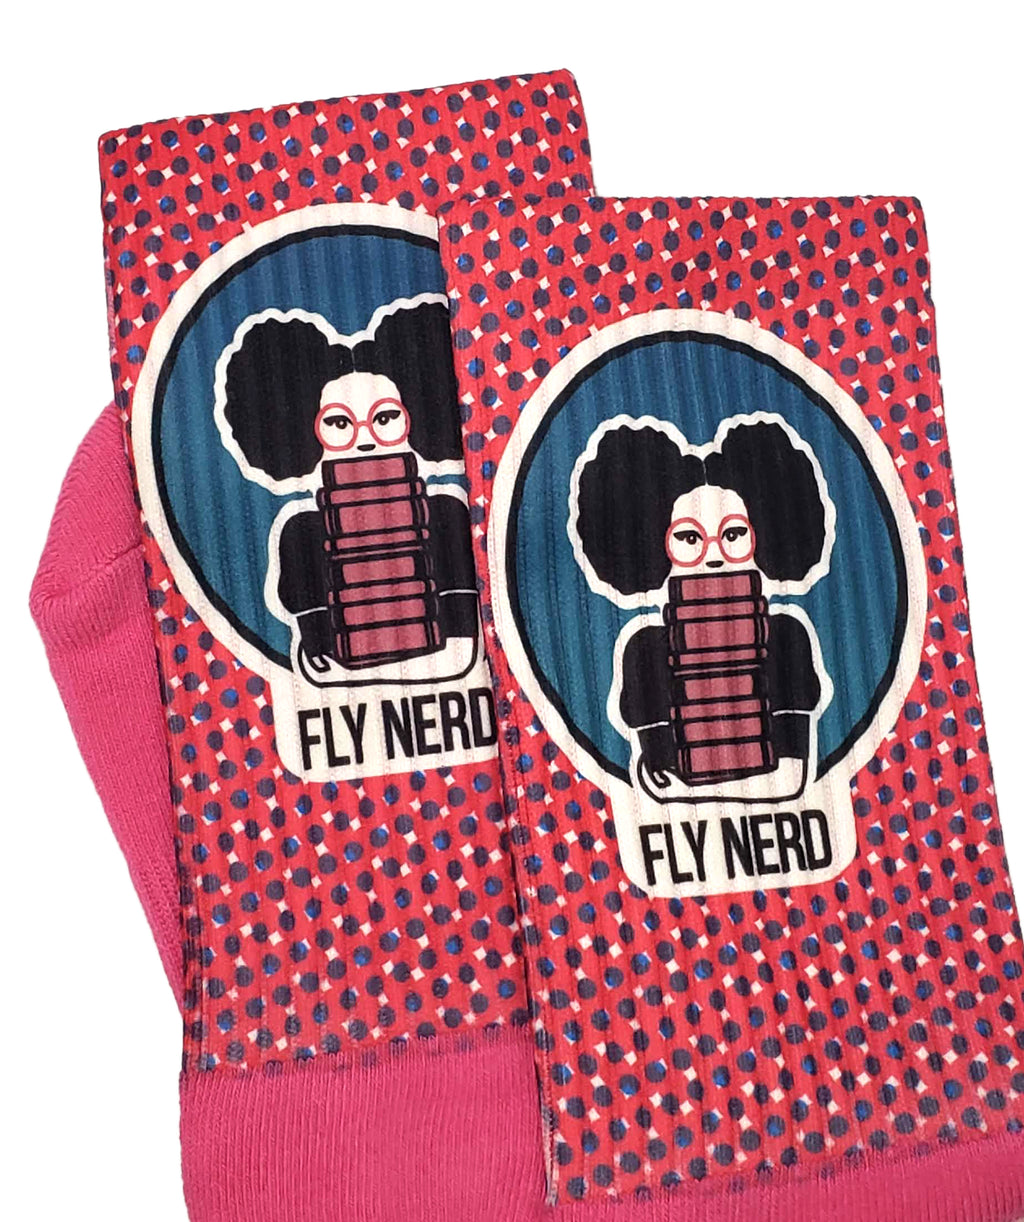 Fly Nerd Bookworm Socks